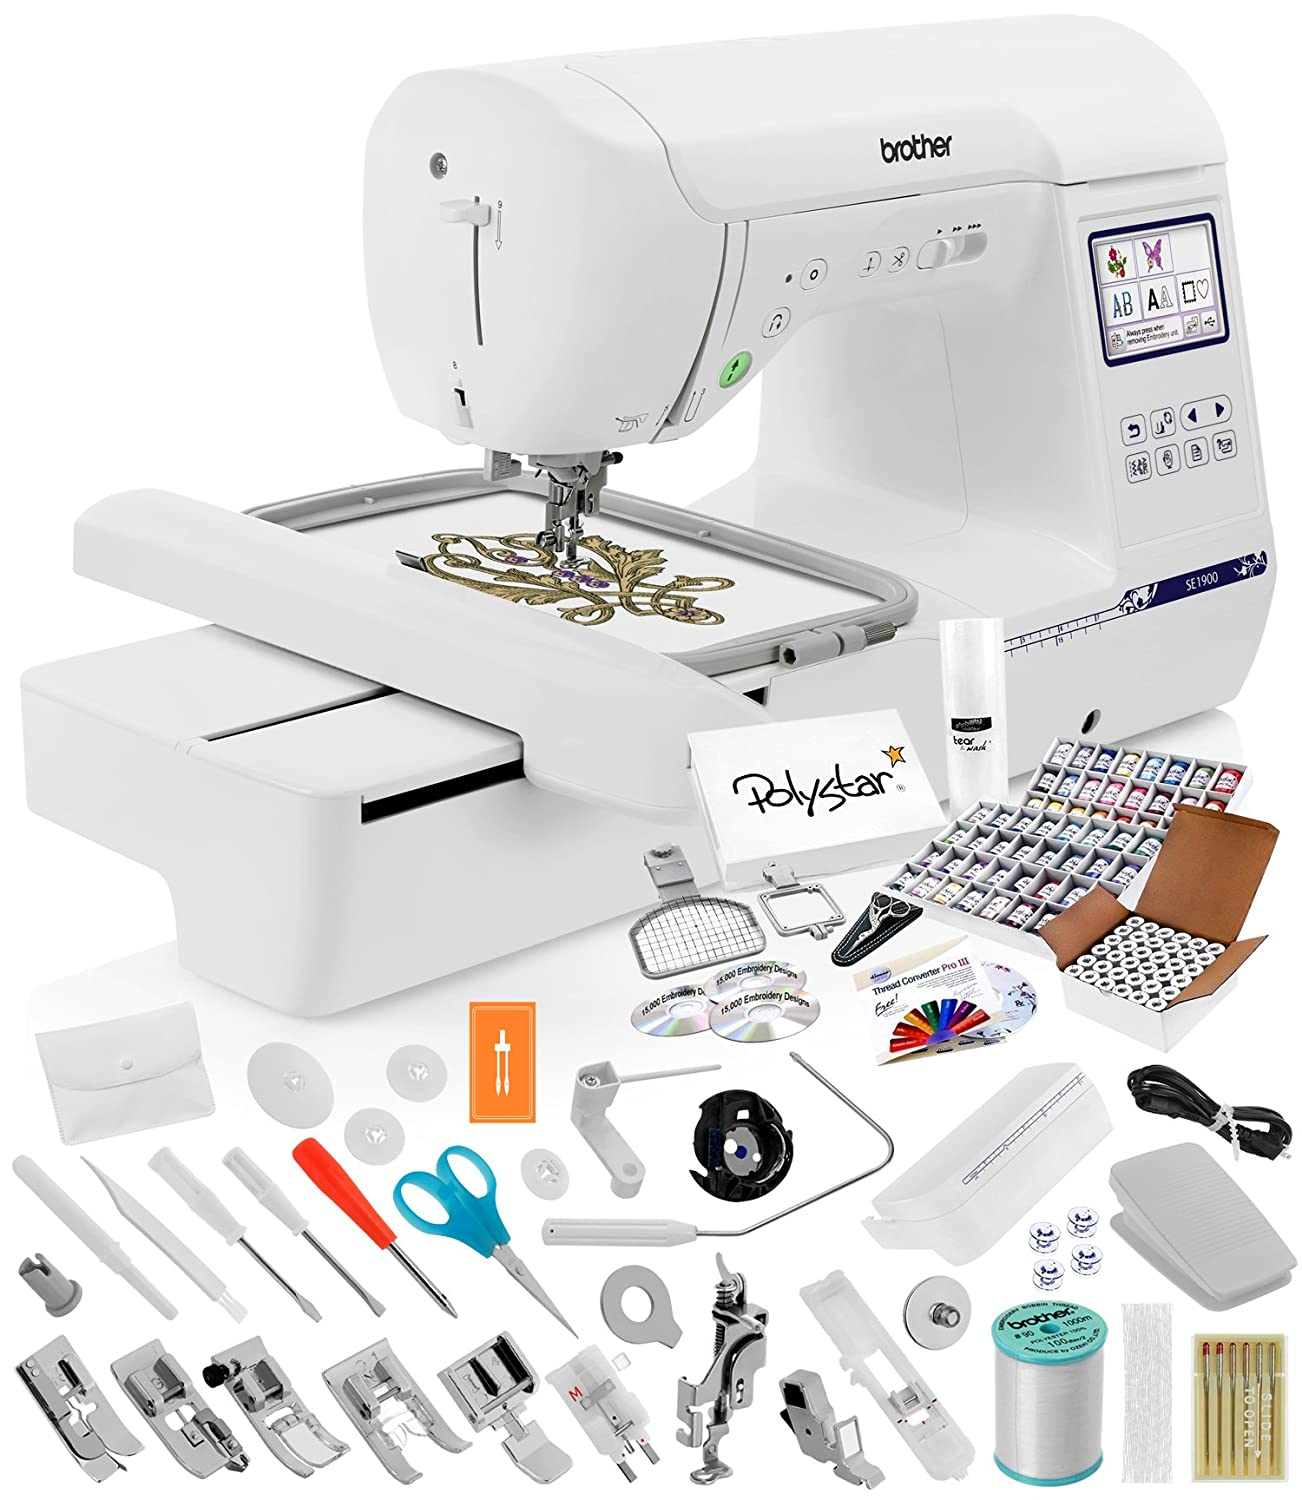 Brother SE1900 Sewing Embroidery Machine + Grand Slam Package Includes 64 Embroidery Threads + Prewound Bobbins + Cap Hoop + Sock Hoop + Stabilizer + 15,000...